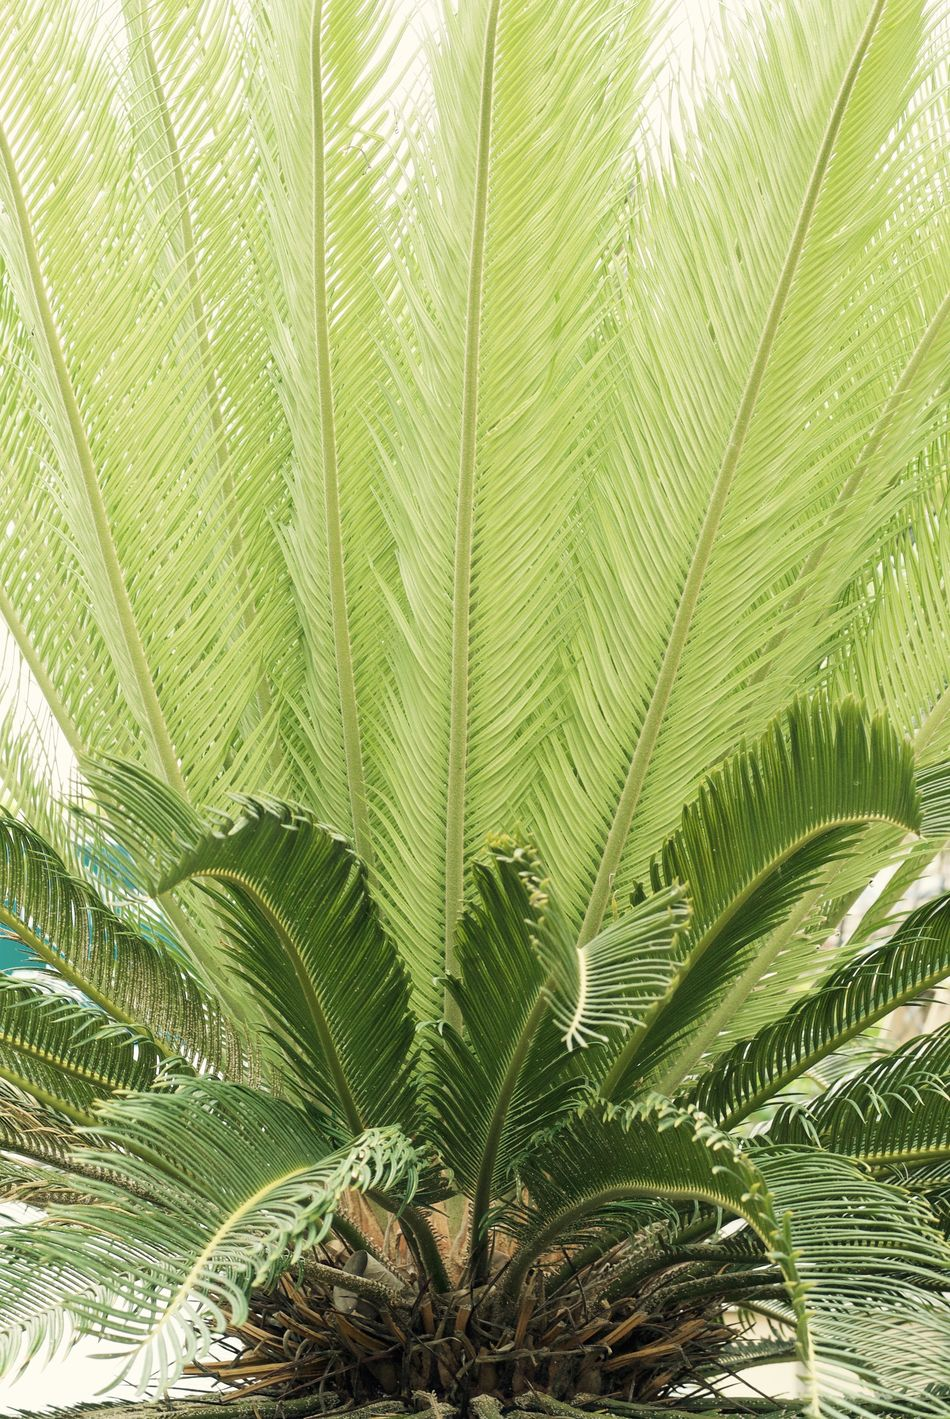 Beauty In Nature Close-up Day Freshness Frond Green Color Growth Leaf Nature No People Outdoors Palm Leaf Palm Tree Plant Tree